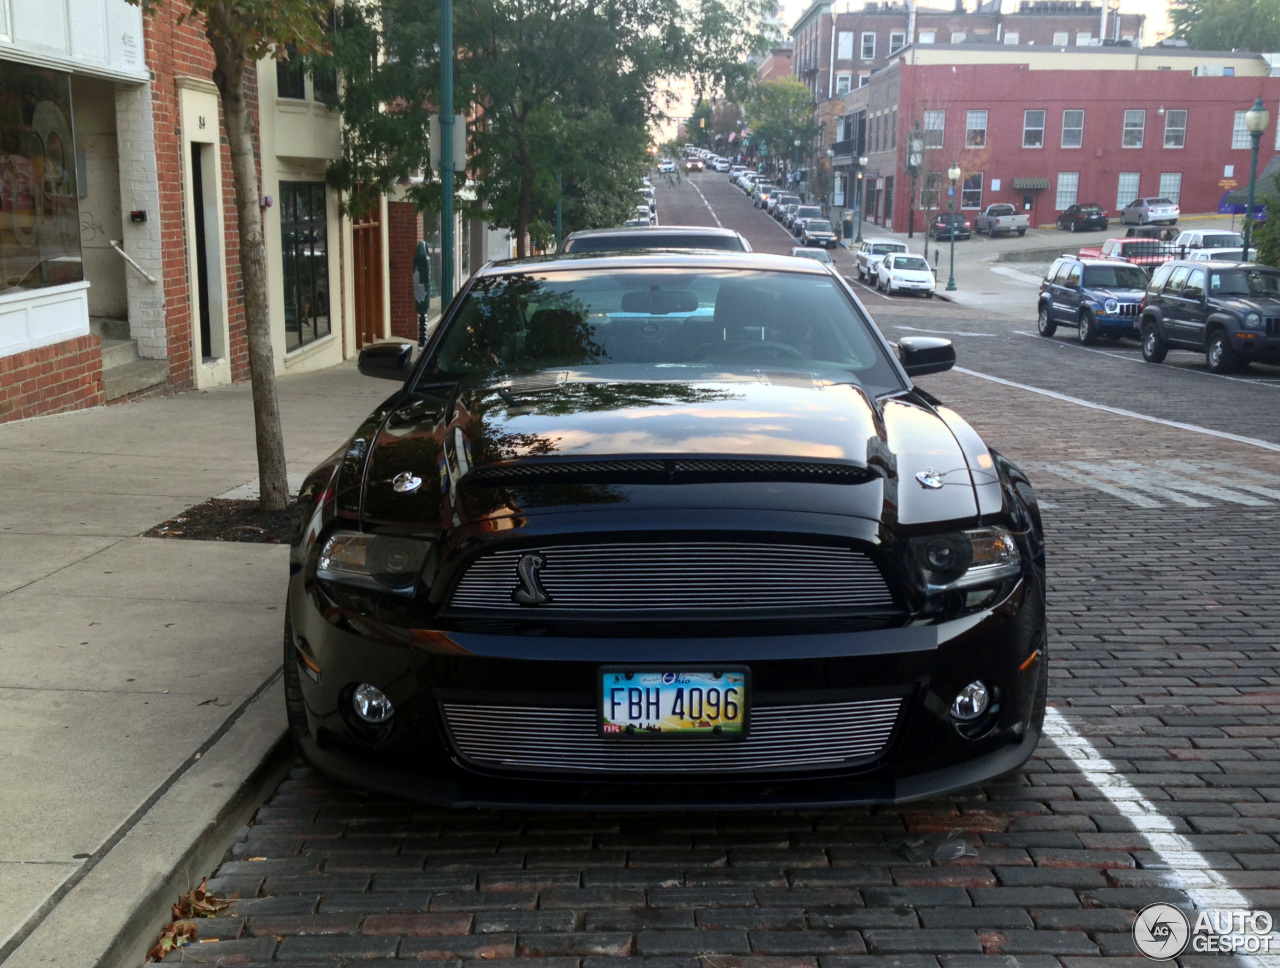 Ford Mustang Shelby Gt500 2010 23 September 2014